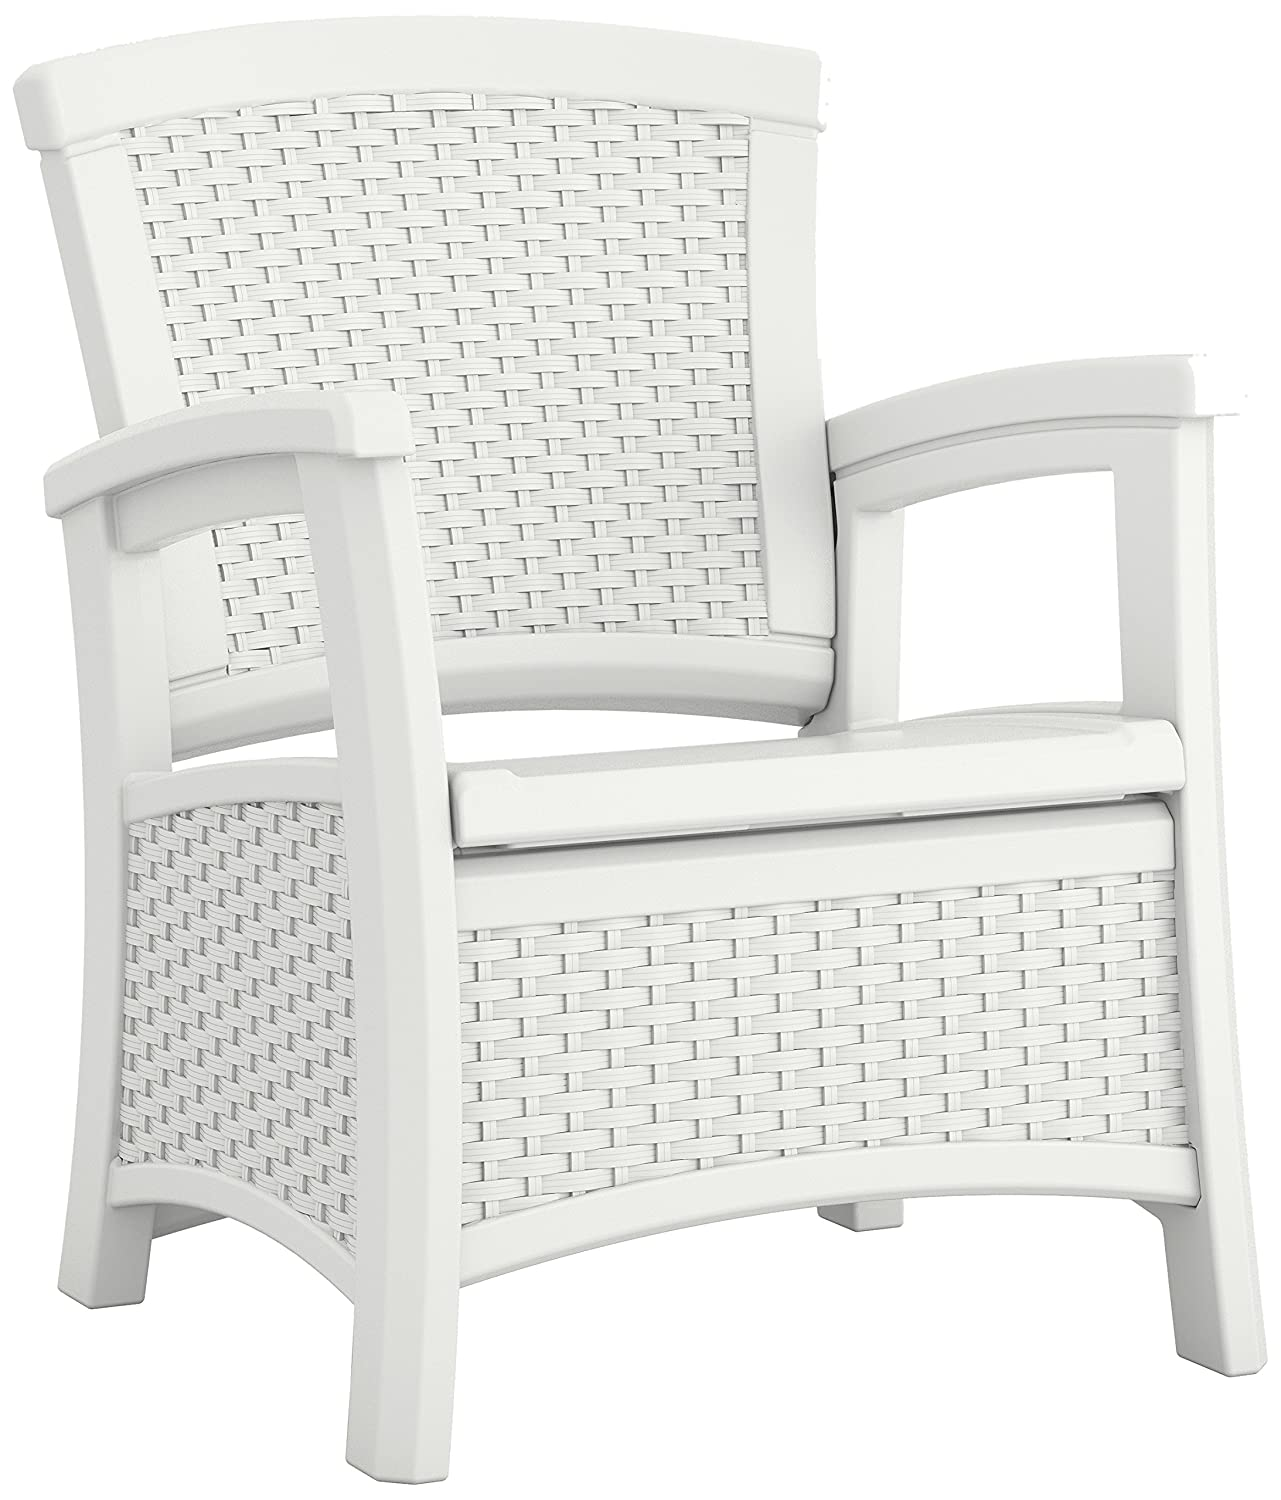 Amazon Suncast ELEMENTS Club Chair with Storage White